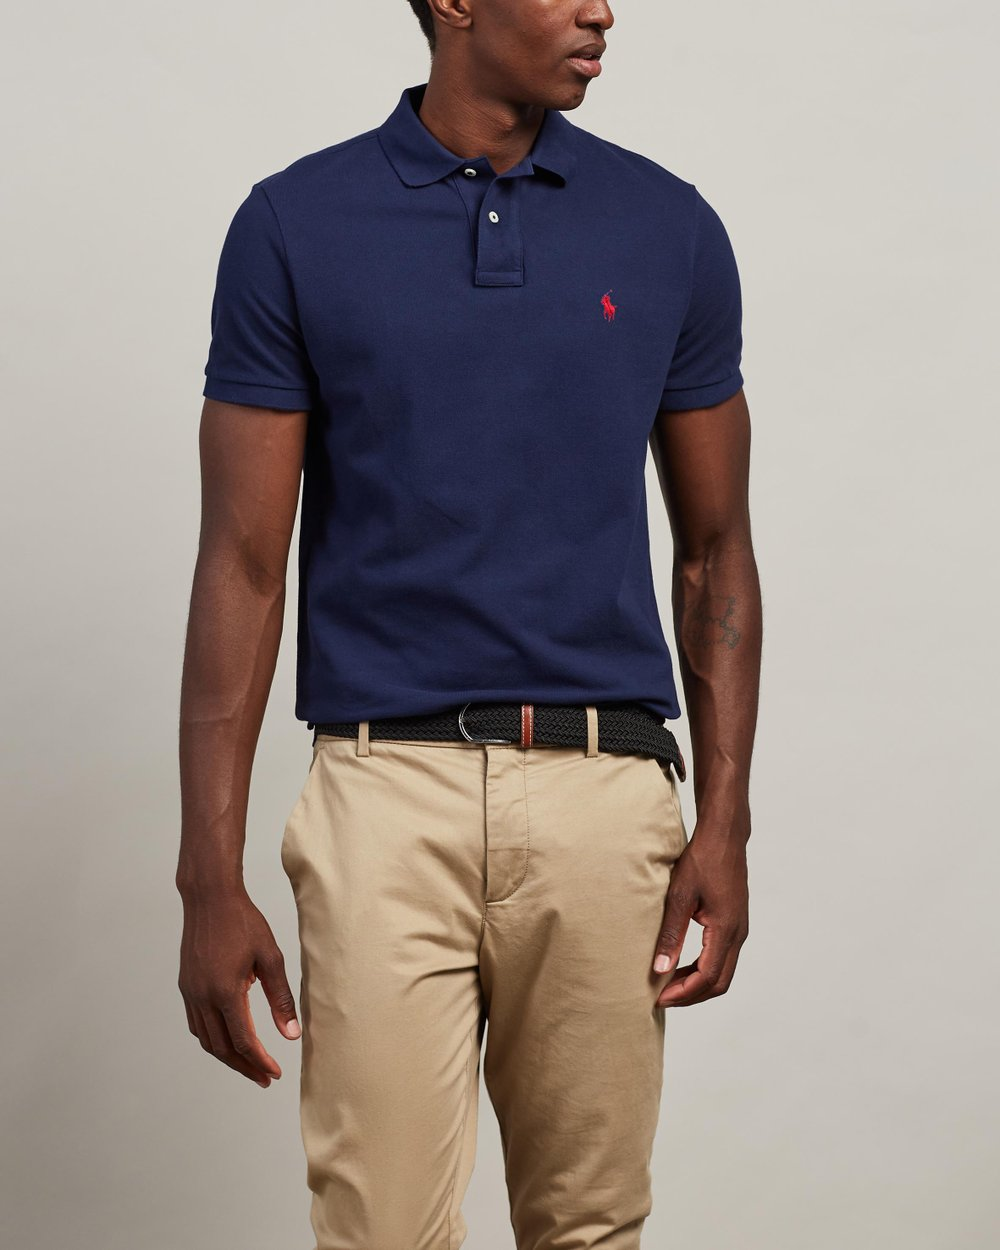 e93e8b5204f2c Basic Mesh Custom Slim Fit Polo by Polo Ralph Lauren Online